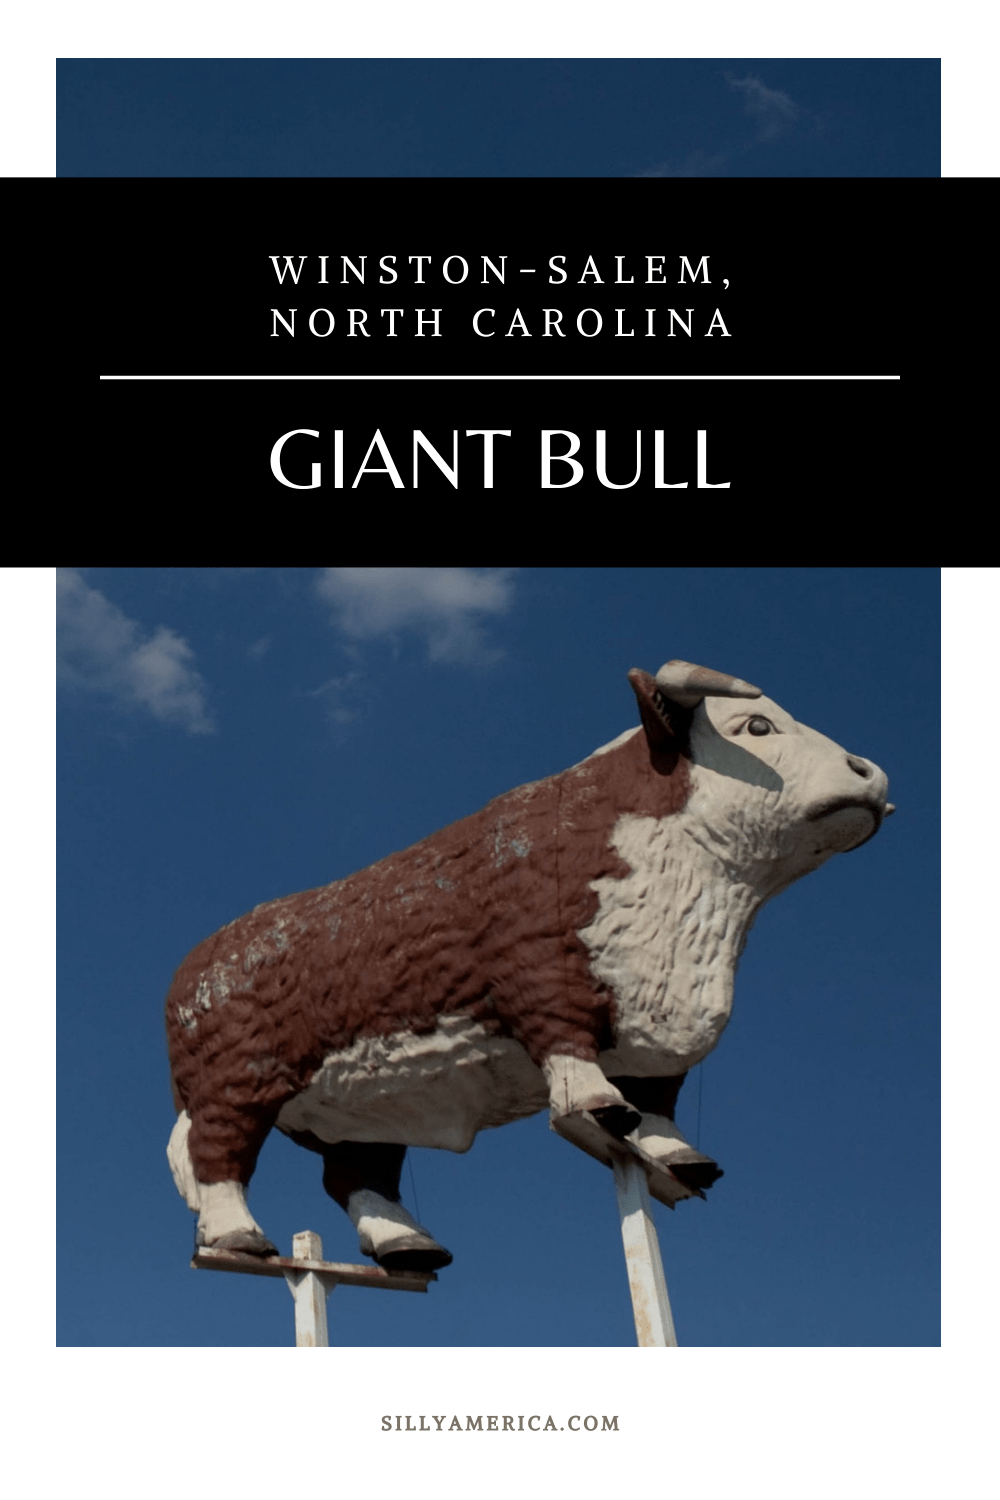 In 2020 the Thrift-Way Meats Giant Bull in Winston-Salem, North Carolinawas moved to Fratellis Italian Steakhouse to replicate Staley's Bull AKA Winston the Bull. Visit this roadside attraction on a North Carolina road trip. #NorthCarolinaRoadsideAttractions #NorthCarolinaRoadsideAttraction #RoadsideAttractions #RoadsideAttraction #RoadTrip #NorthCarolinaRoadTrip #NorthCarolinaRoadTripBucketLists #NorthCarolinaBucketList